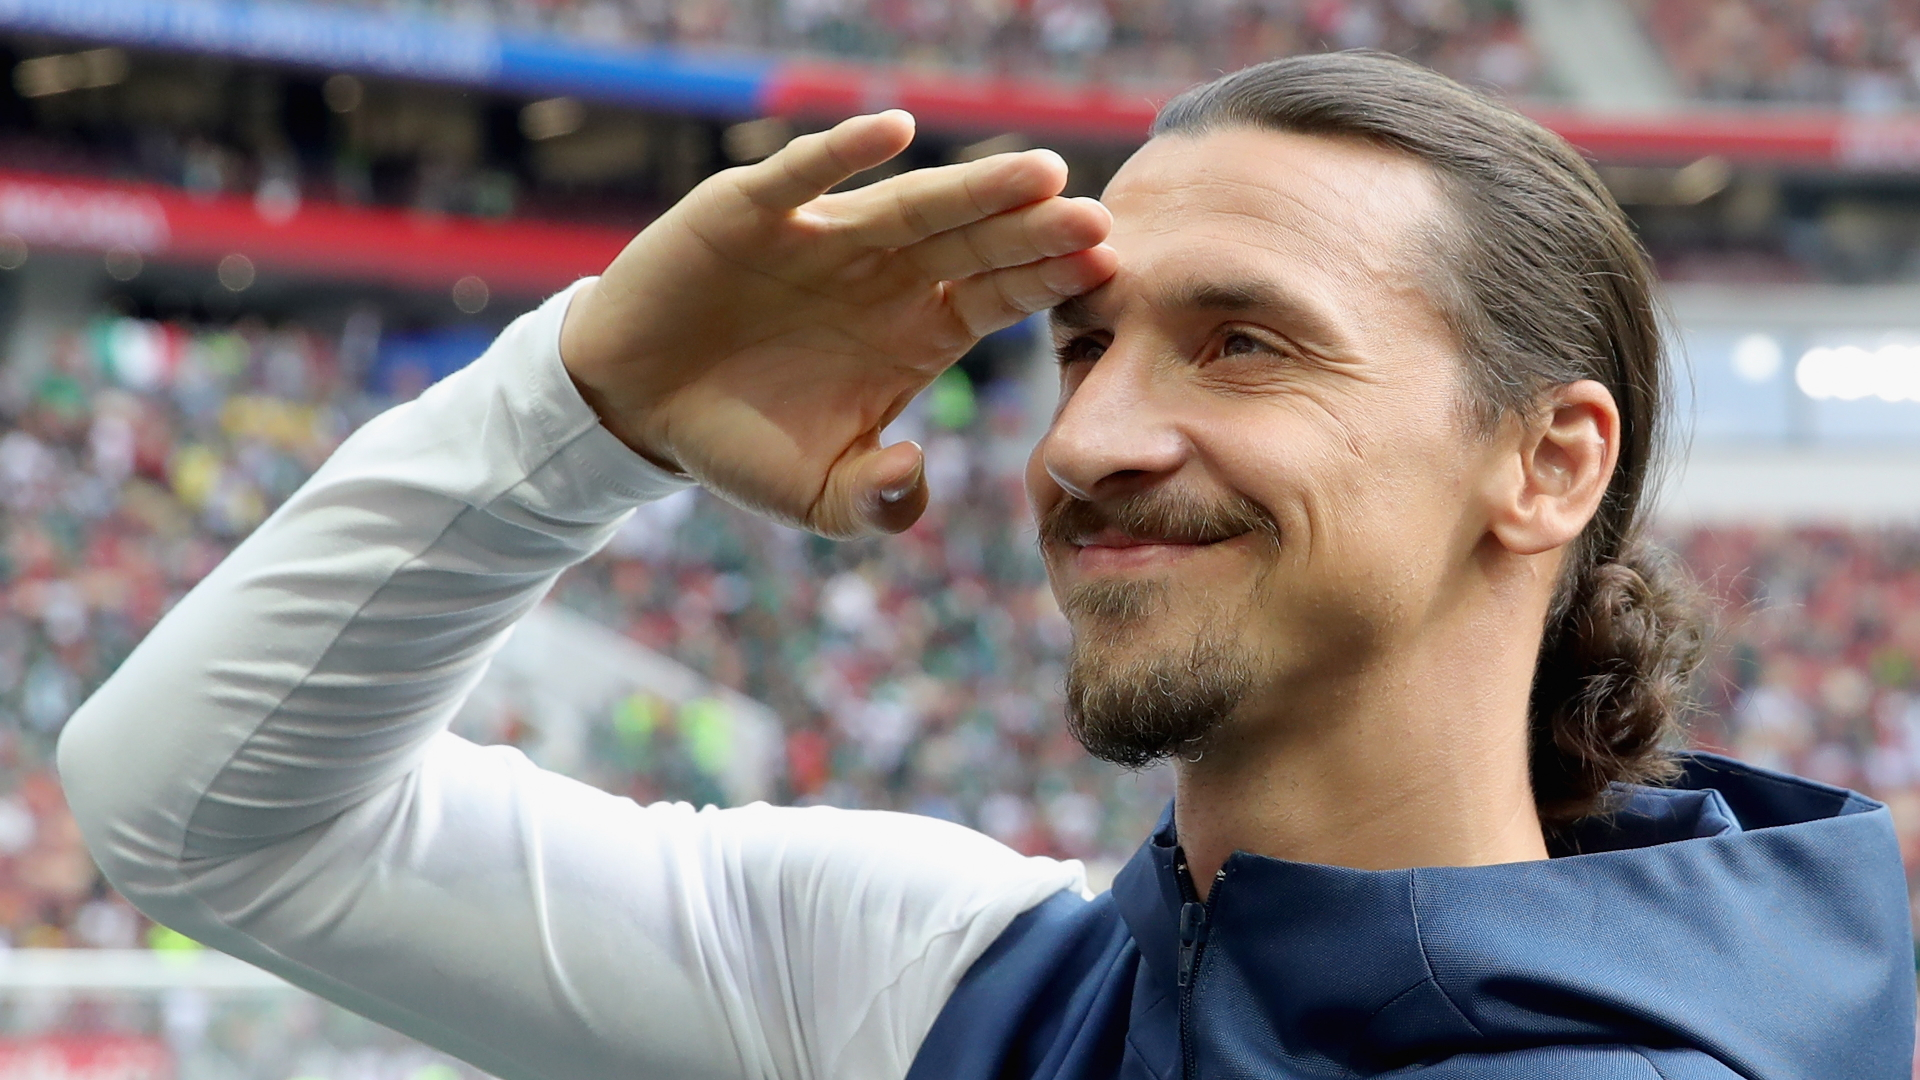 'You are welcome' - Ibrahimovic confirms LA Galaxy departure with typical swagger